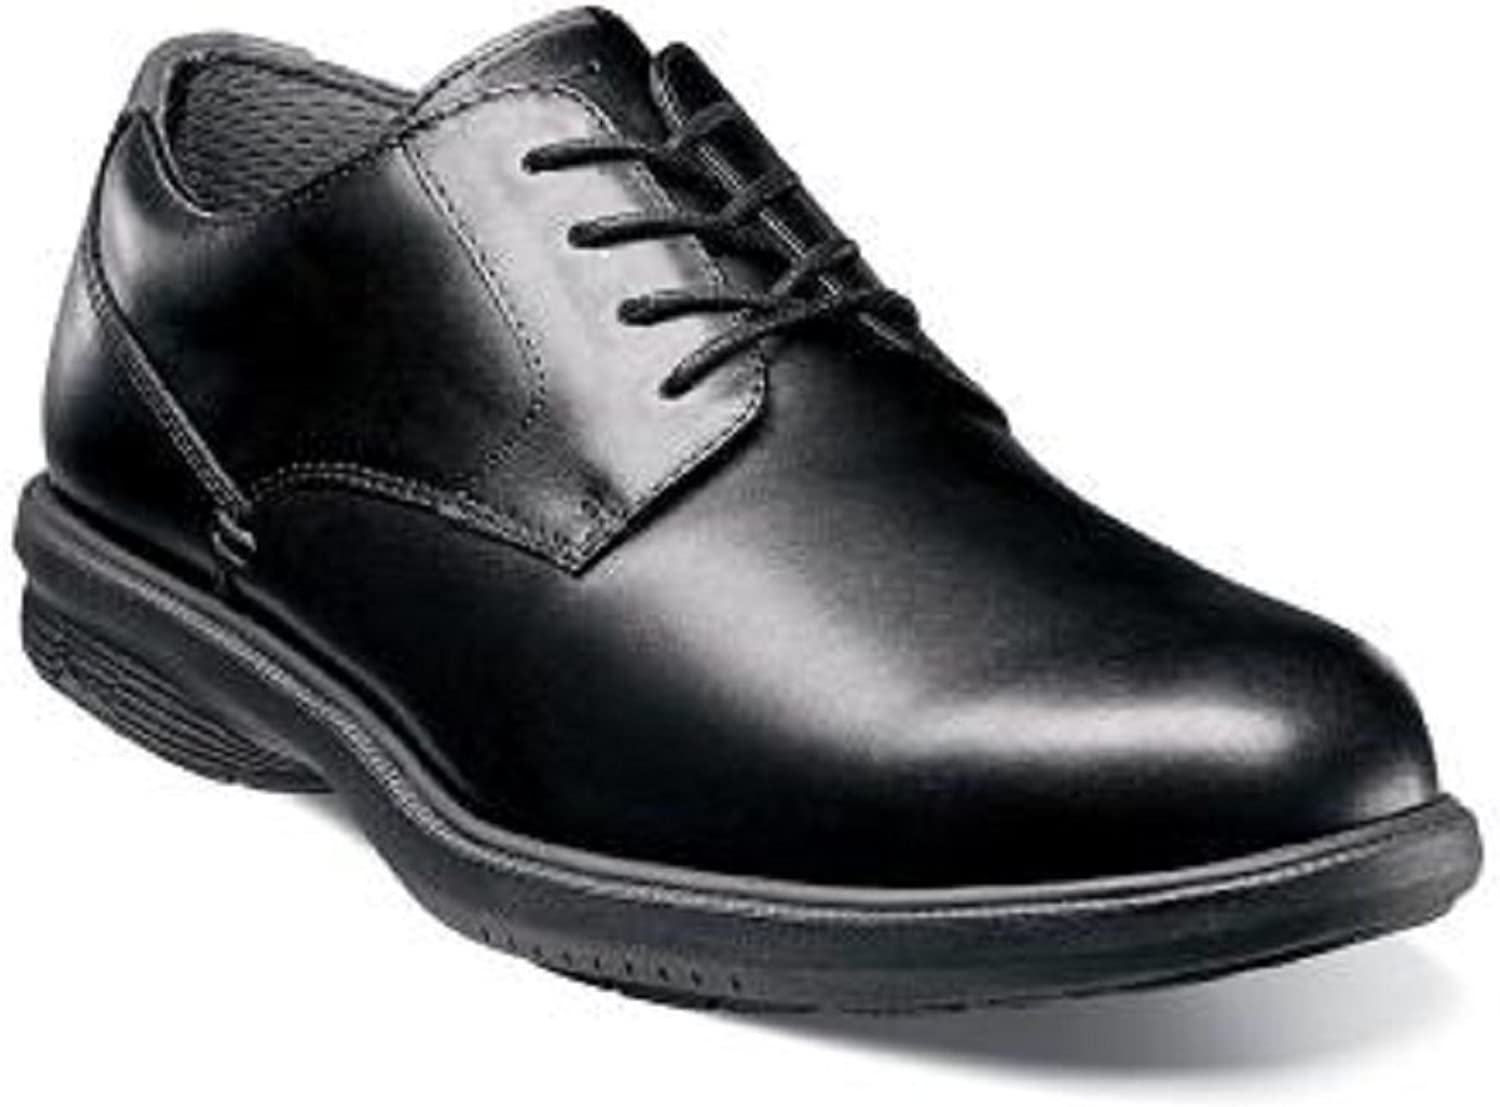 Nunn Bush Marvin St. KORE Plain Toe Men's Oxford